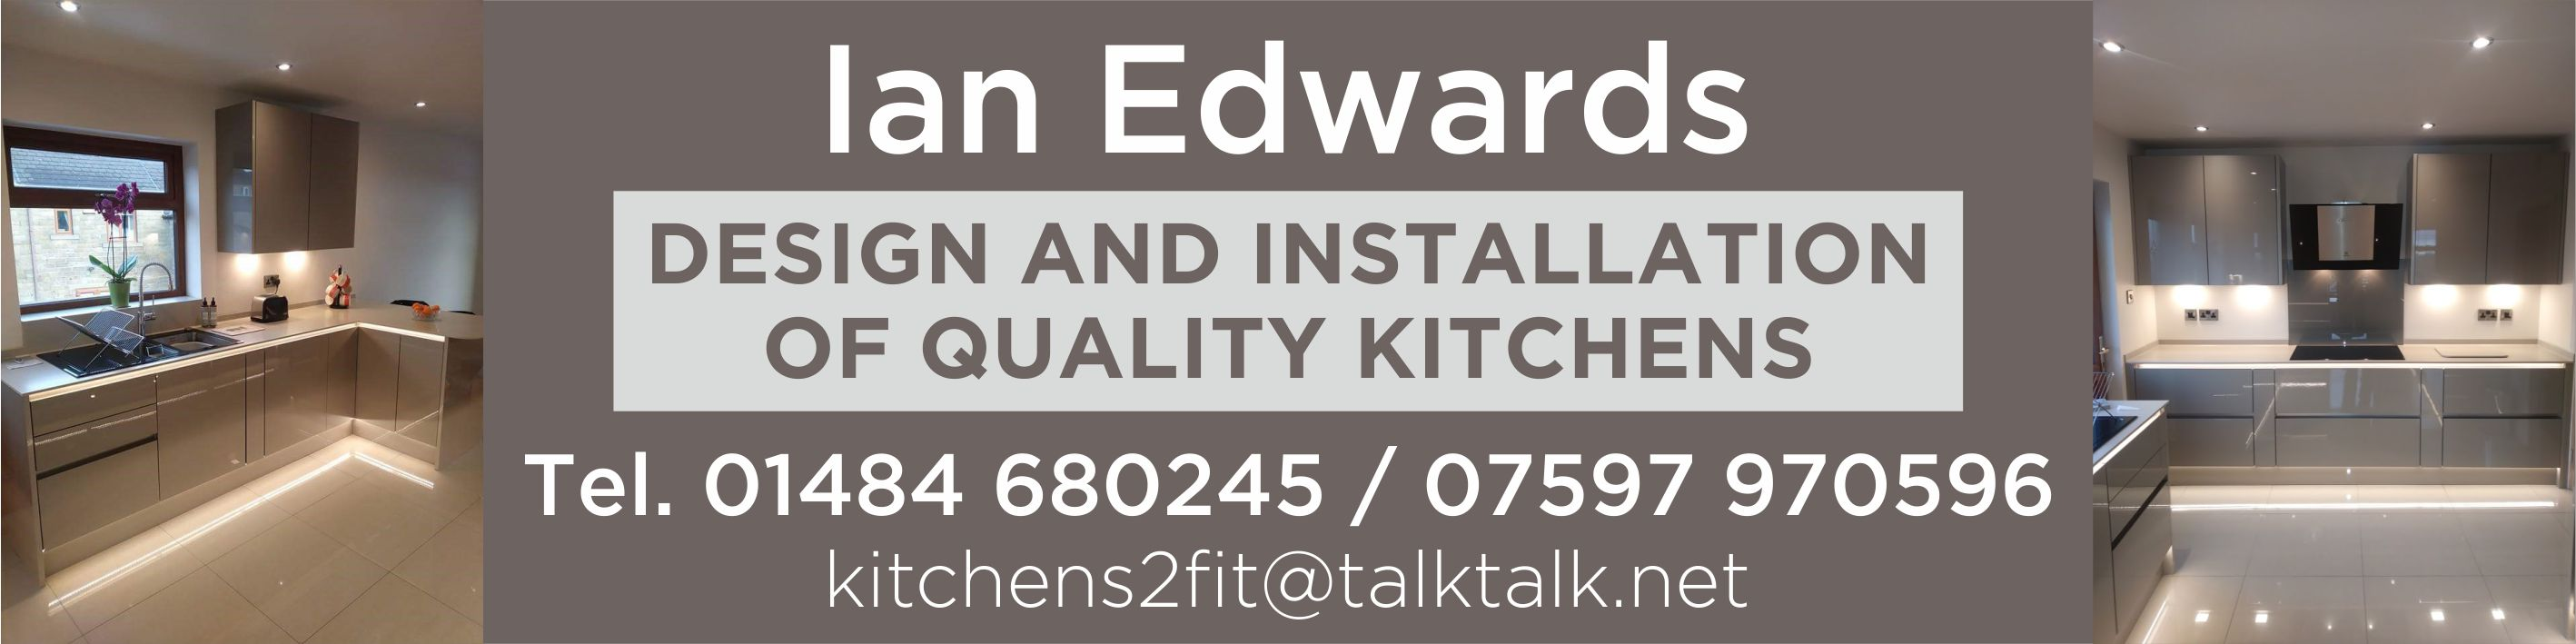 Ian Edwards - Design & Installation of Kitchens